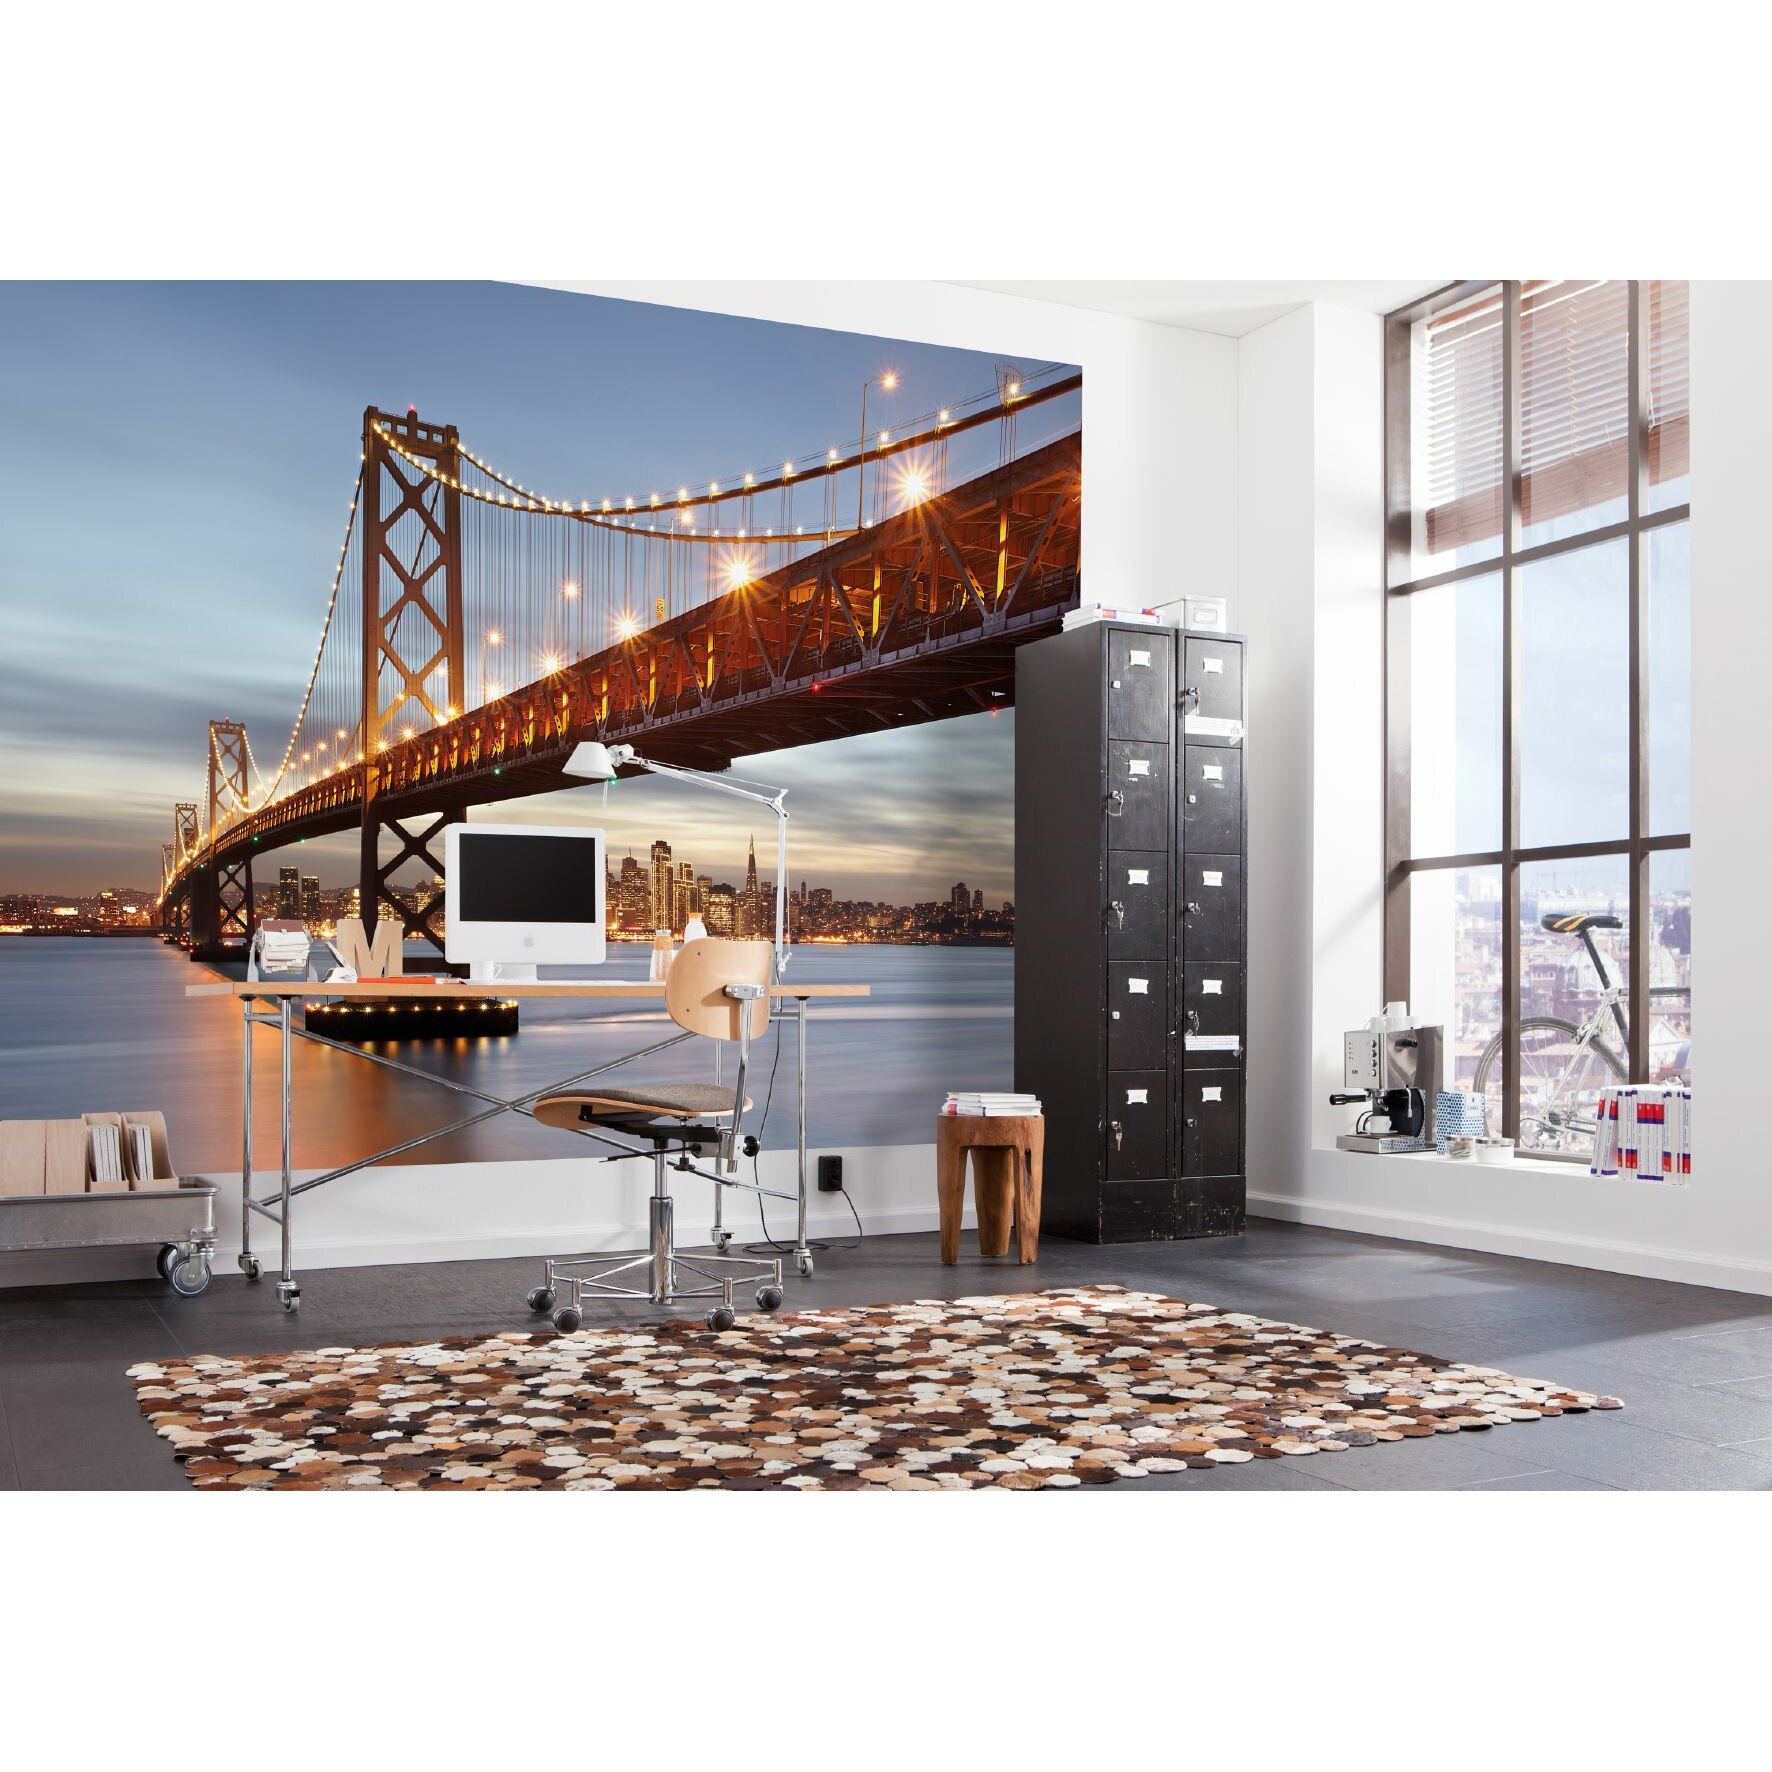 Brewster home fashions komar bay bridge wall mural for Brewster wall mural